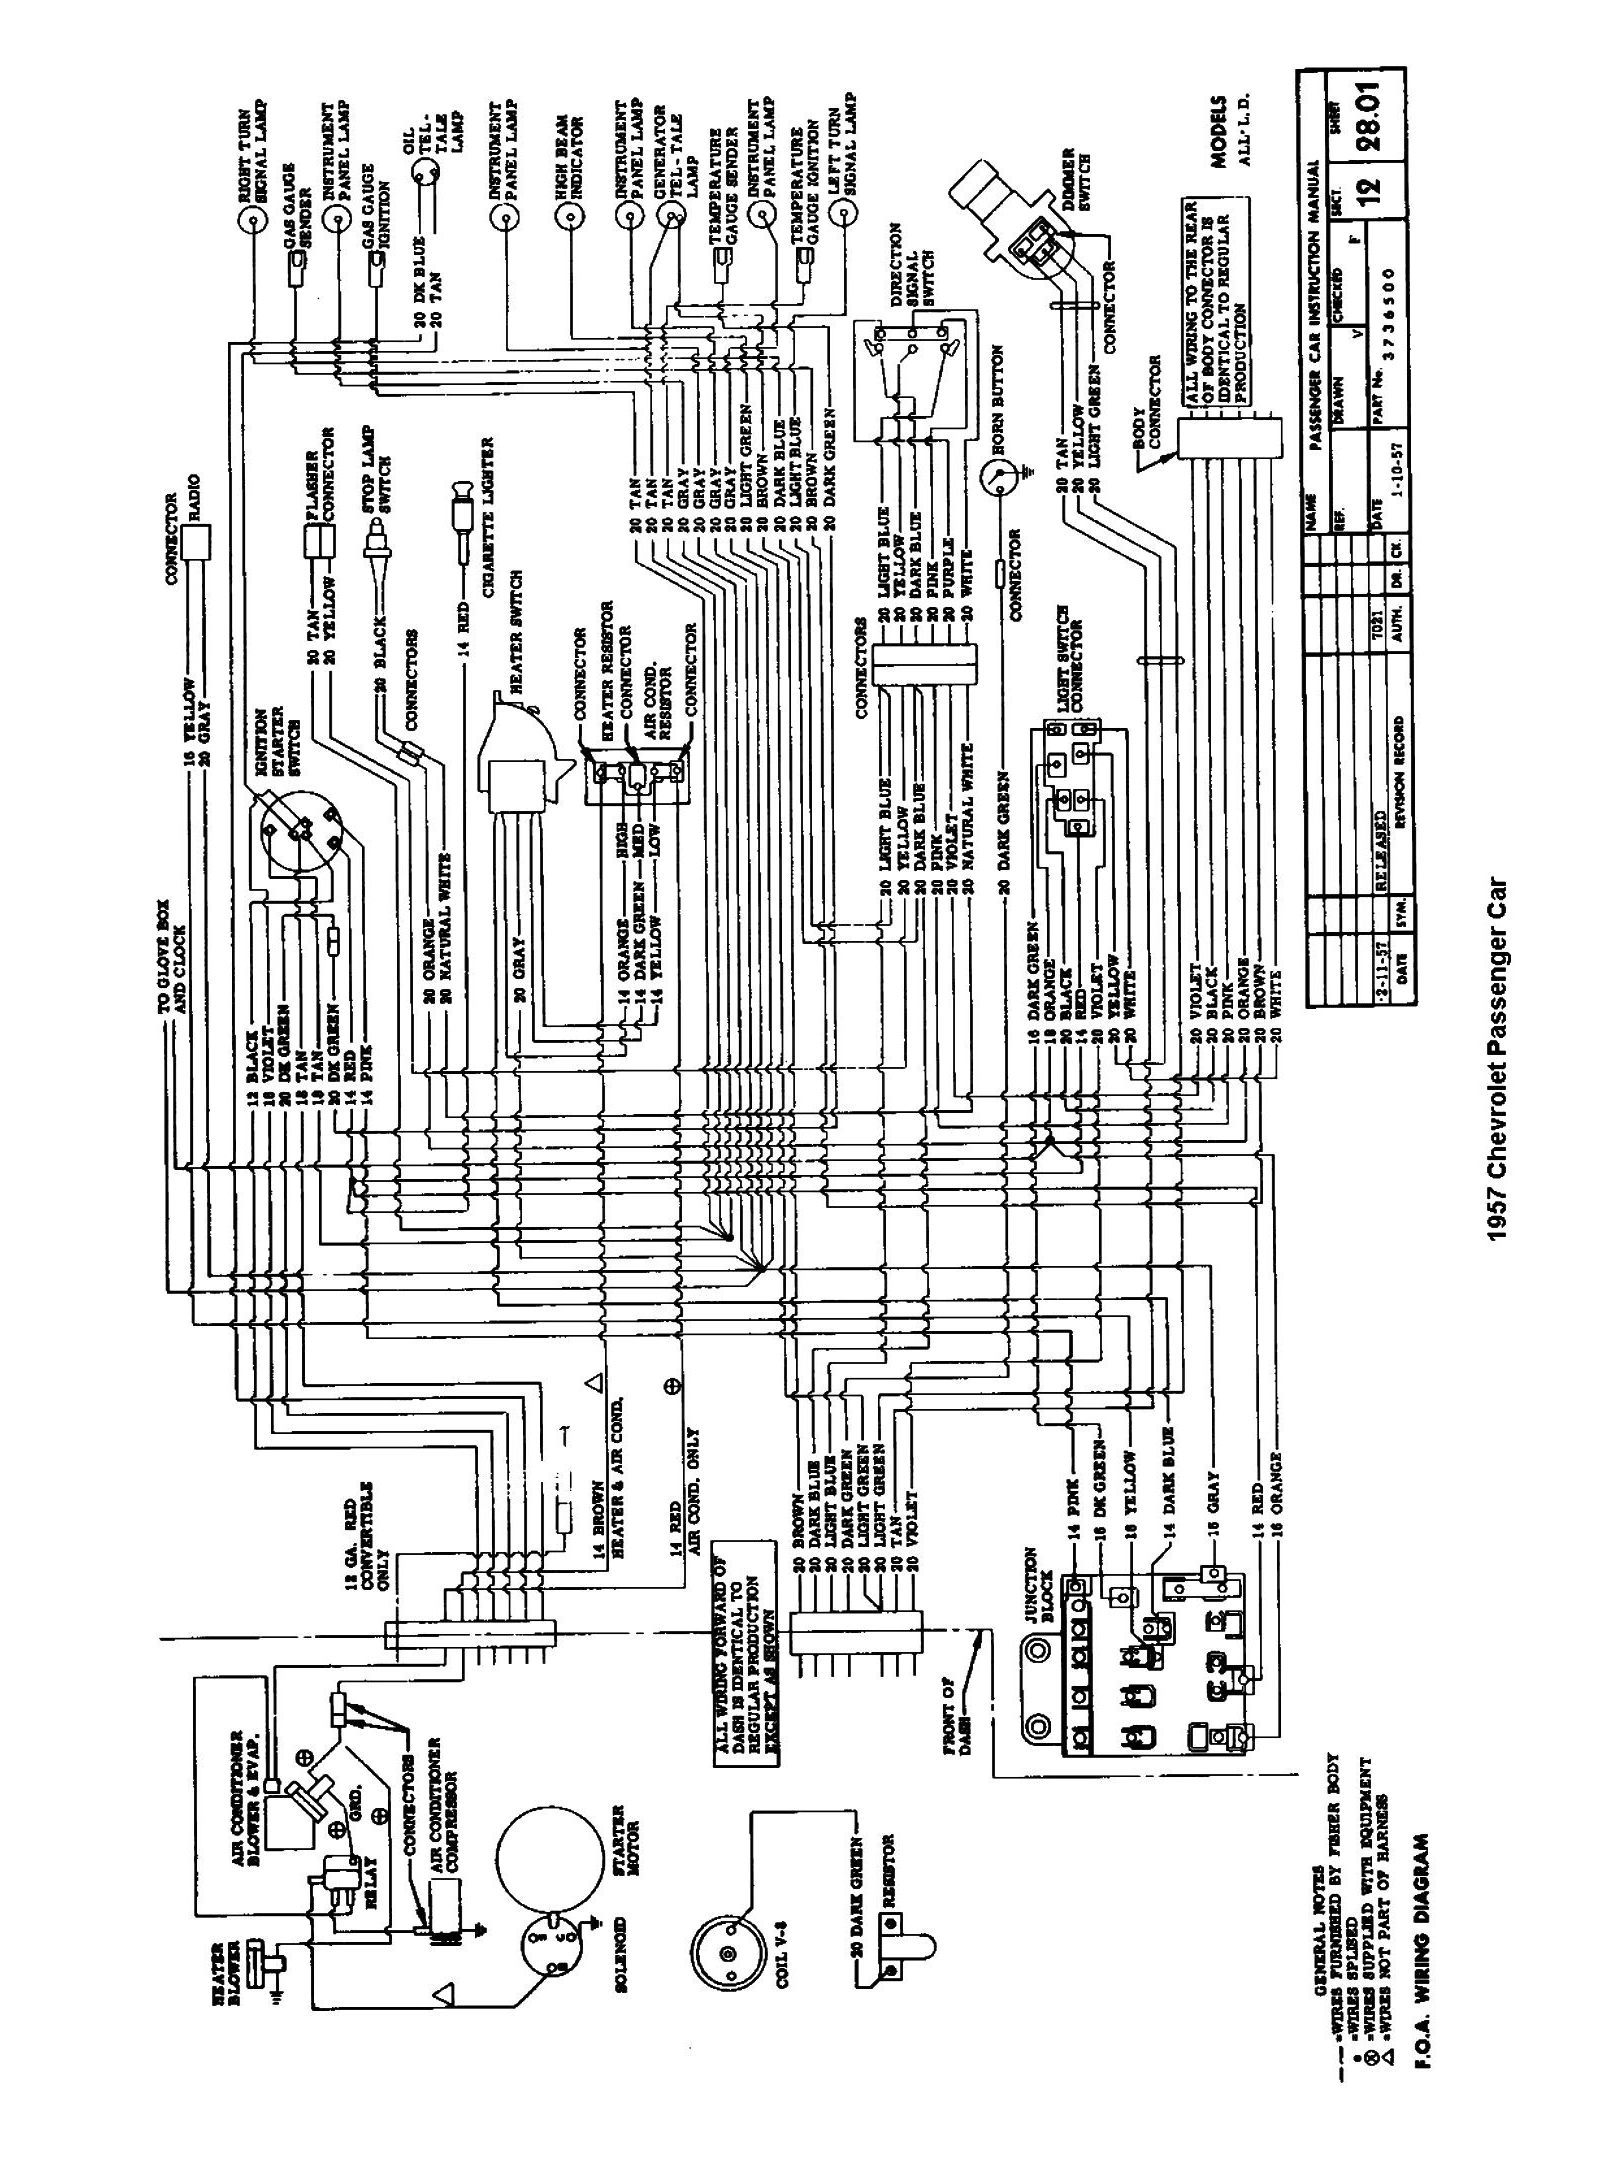 1957 chevy heater wiring diagram simple wiring diagram rh david huggett co  uk 57 chevy clock